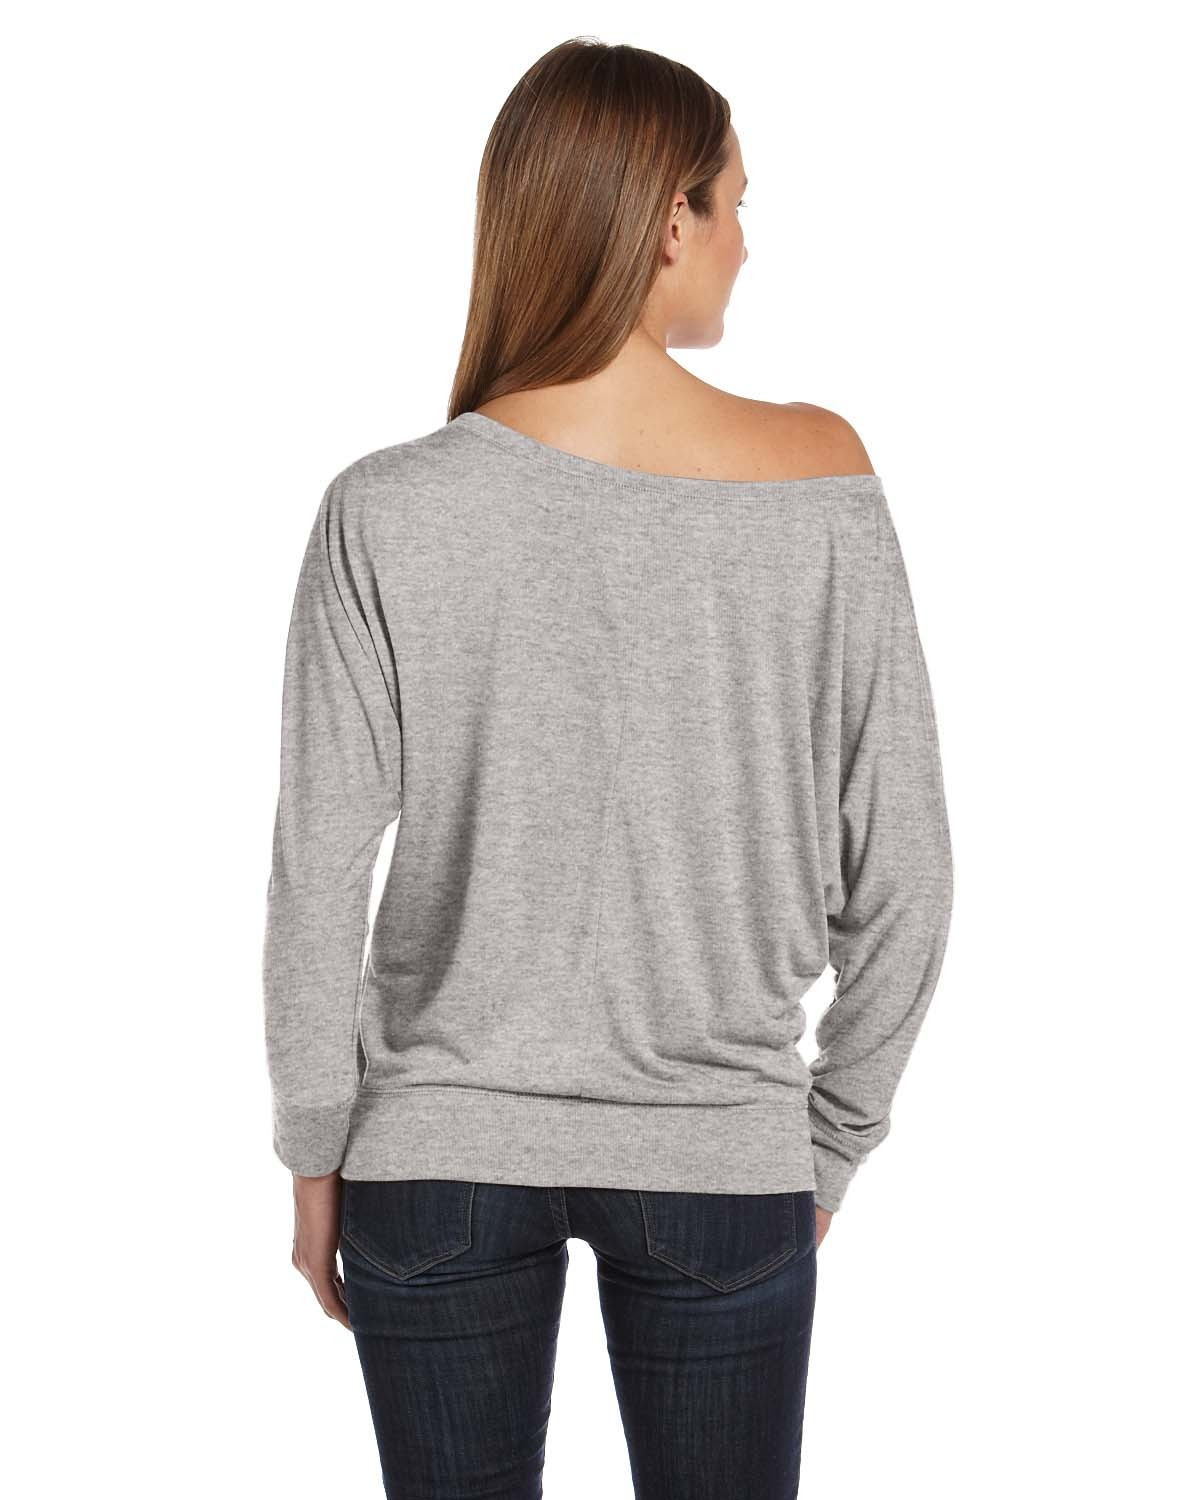 8850 Bella + Canvas ATHLETIC HEATHER